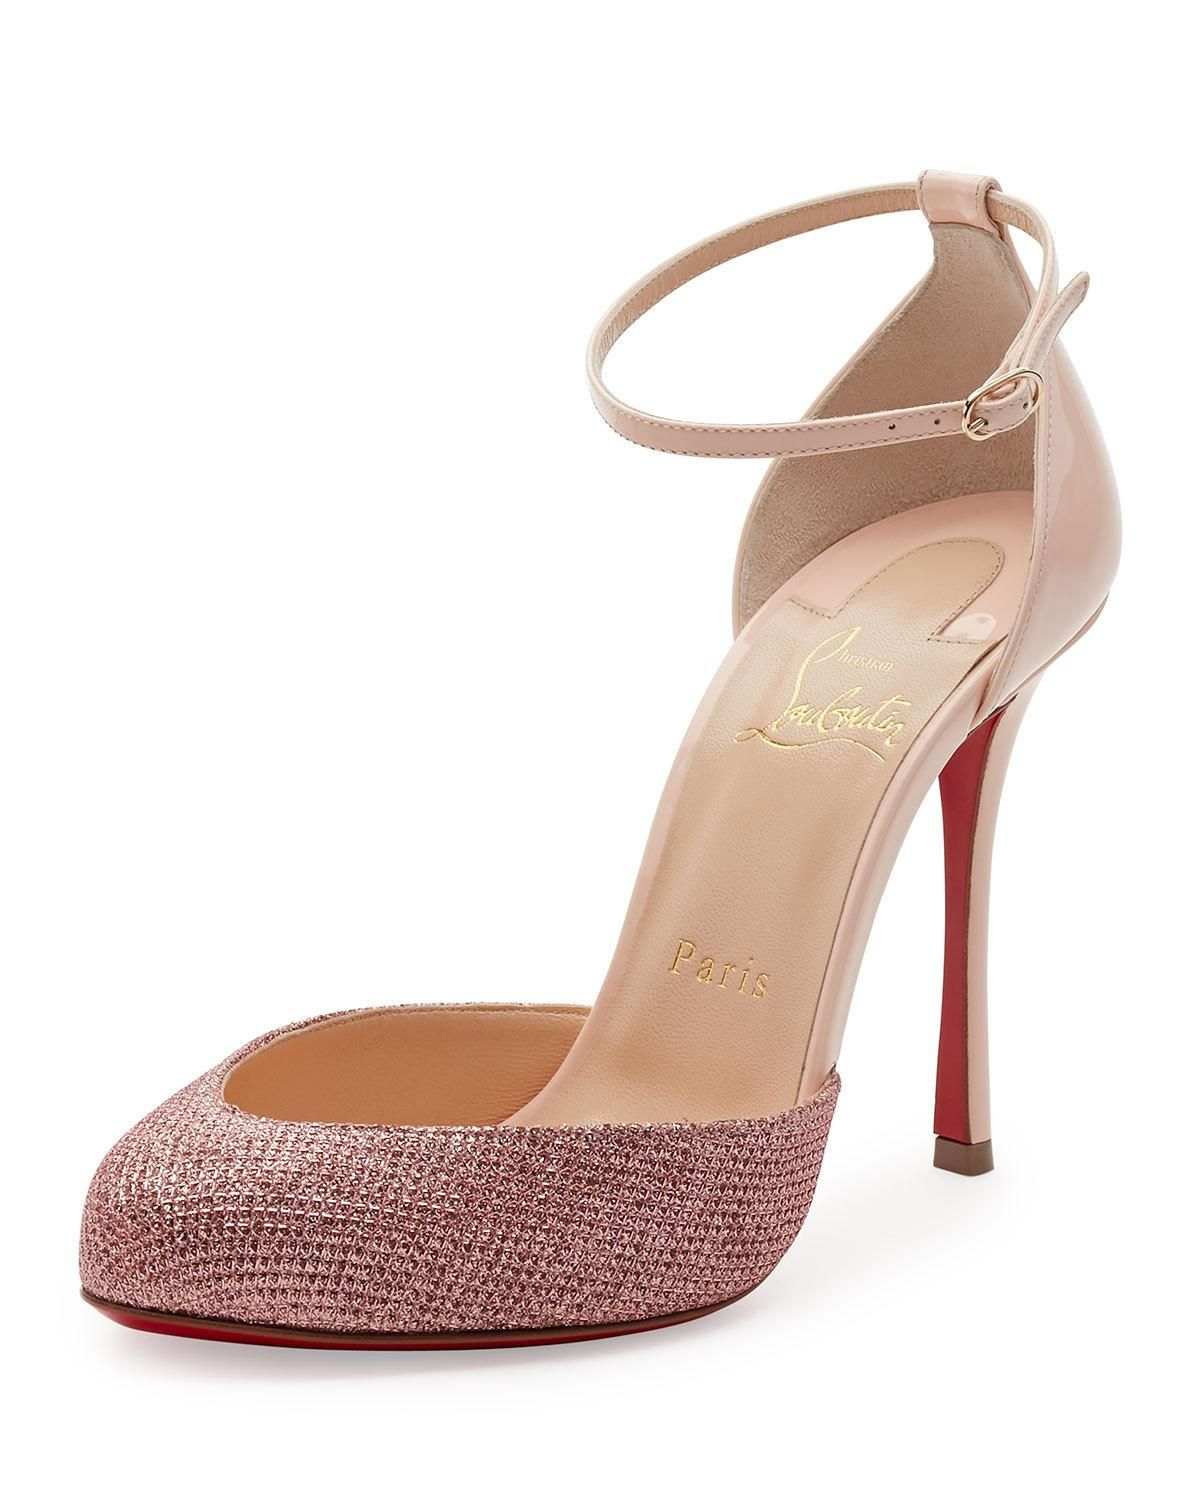 06500c9a5bc8 Christian Louboutin Dollyla Glitter   Patent 100mm Red Sole Pump ...